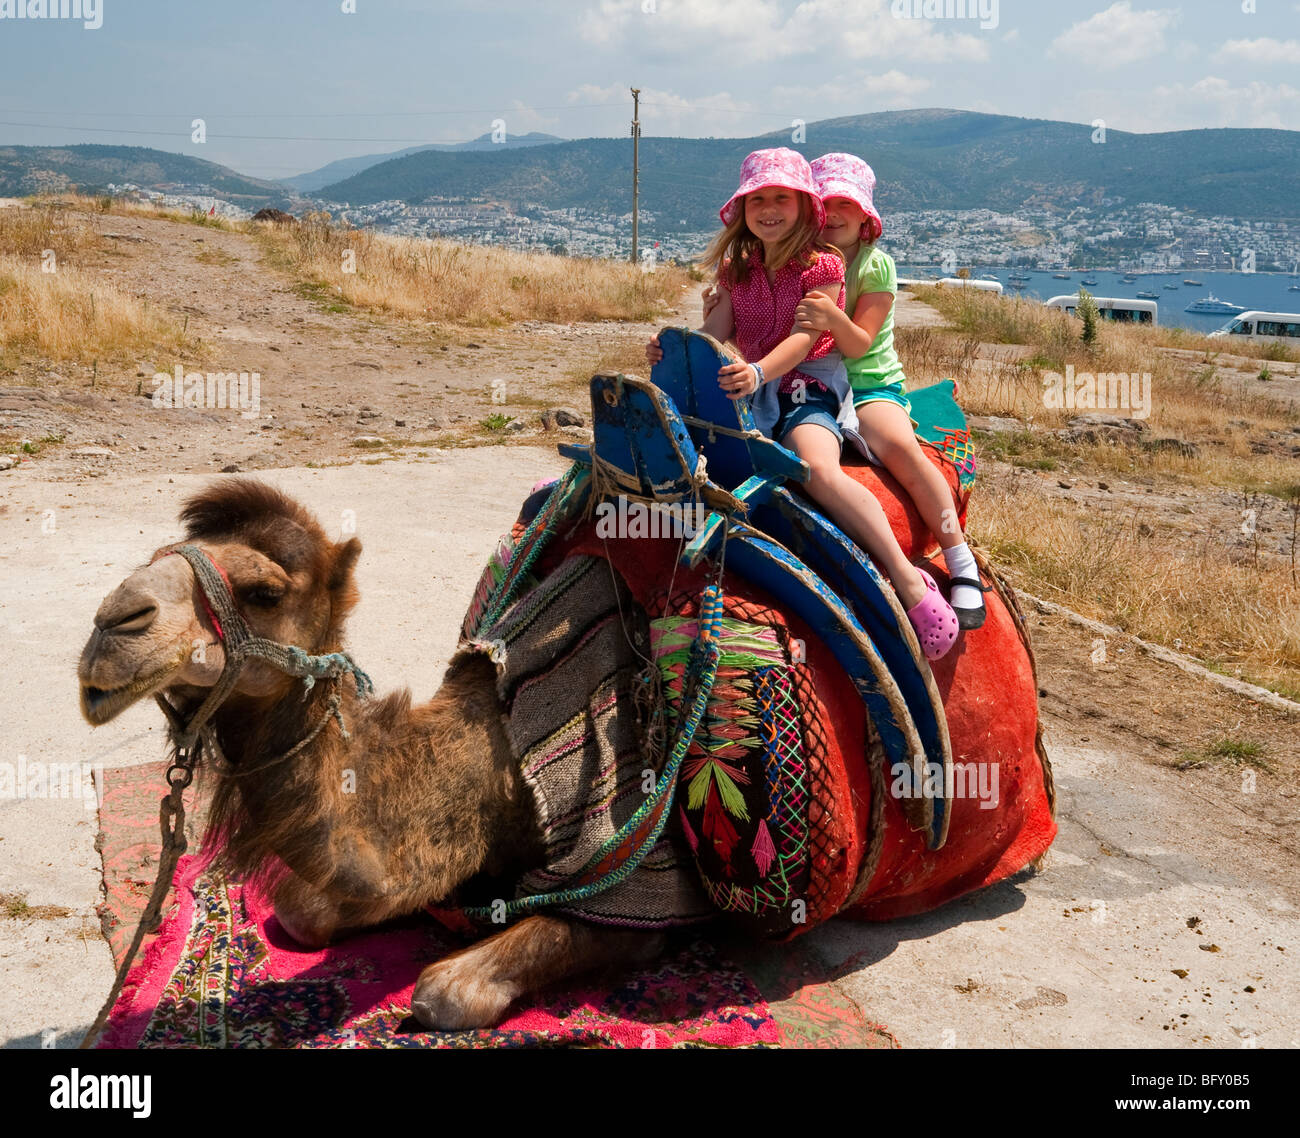 bodrum girls This is a comprehensive guide for bodrum, turkey, aimed primarily at men vacationing there you will find info on the best venues, areas to stay, and how to meet bodrum girls there.